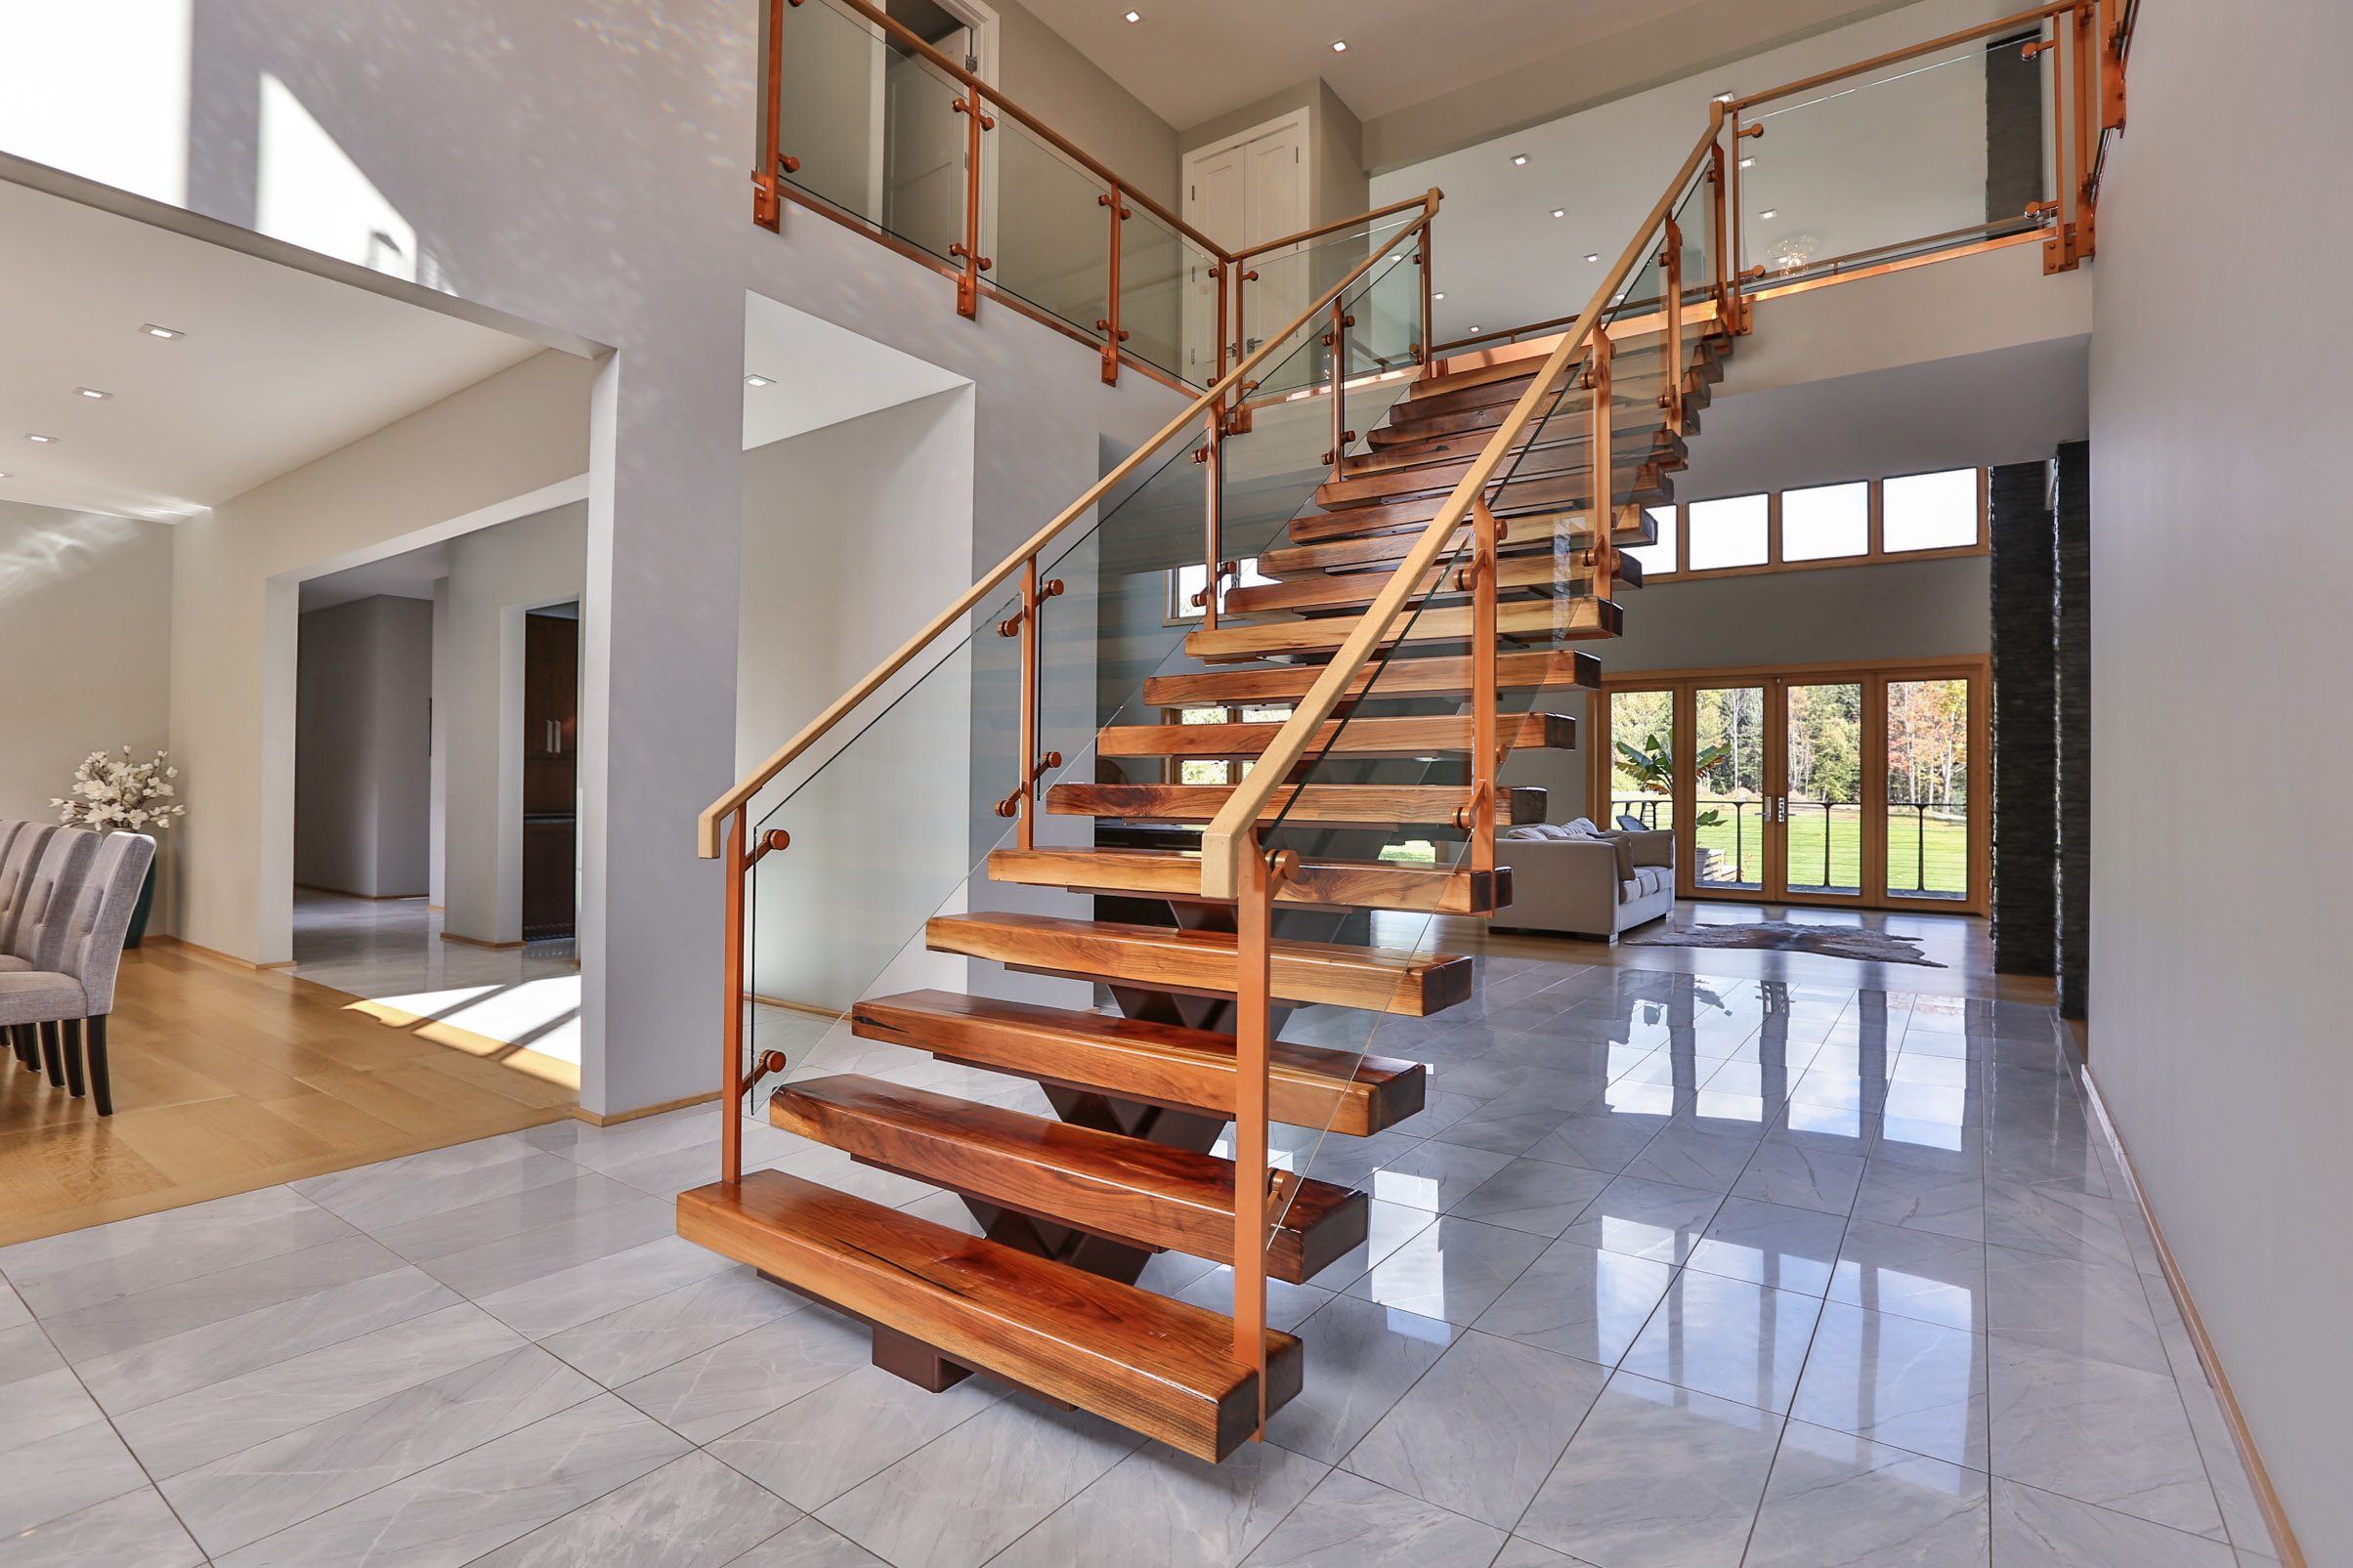 Wide mono-stringer staircase with glass railing.